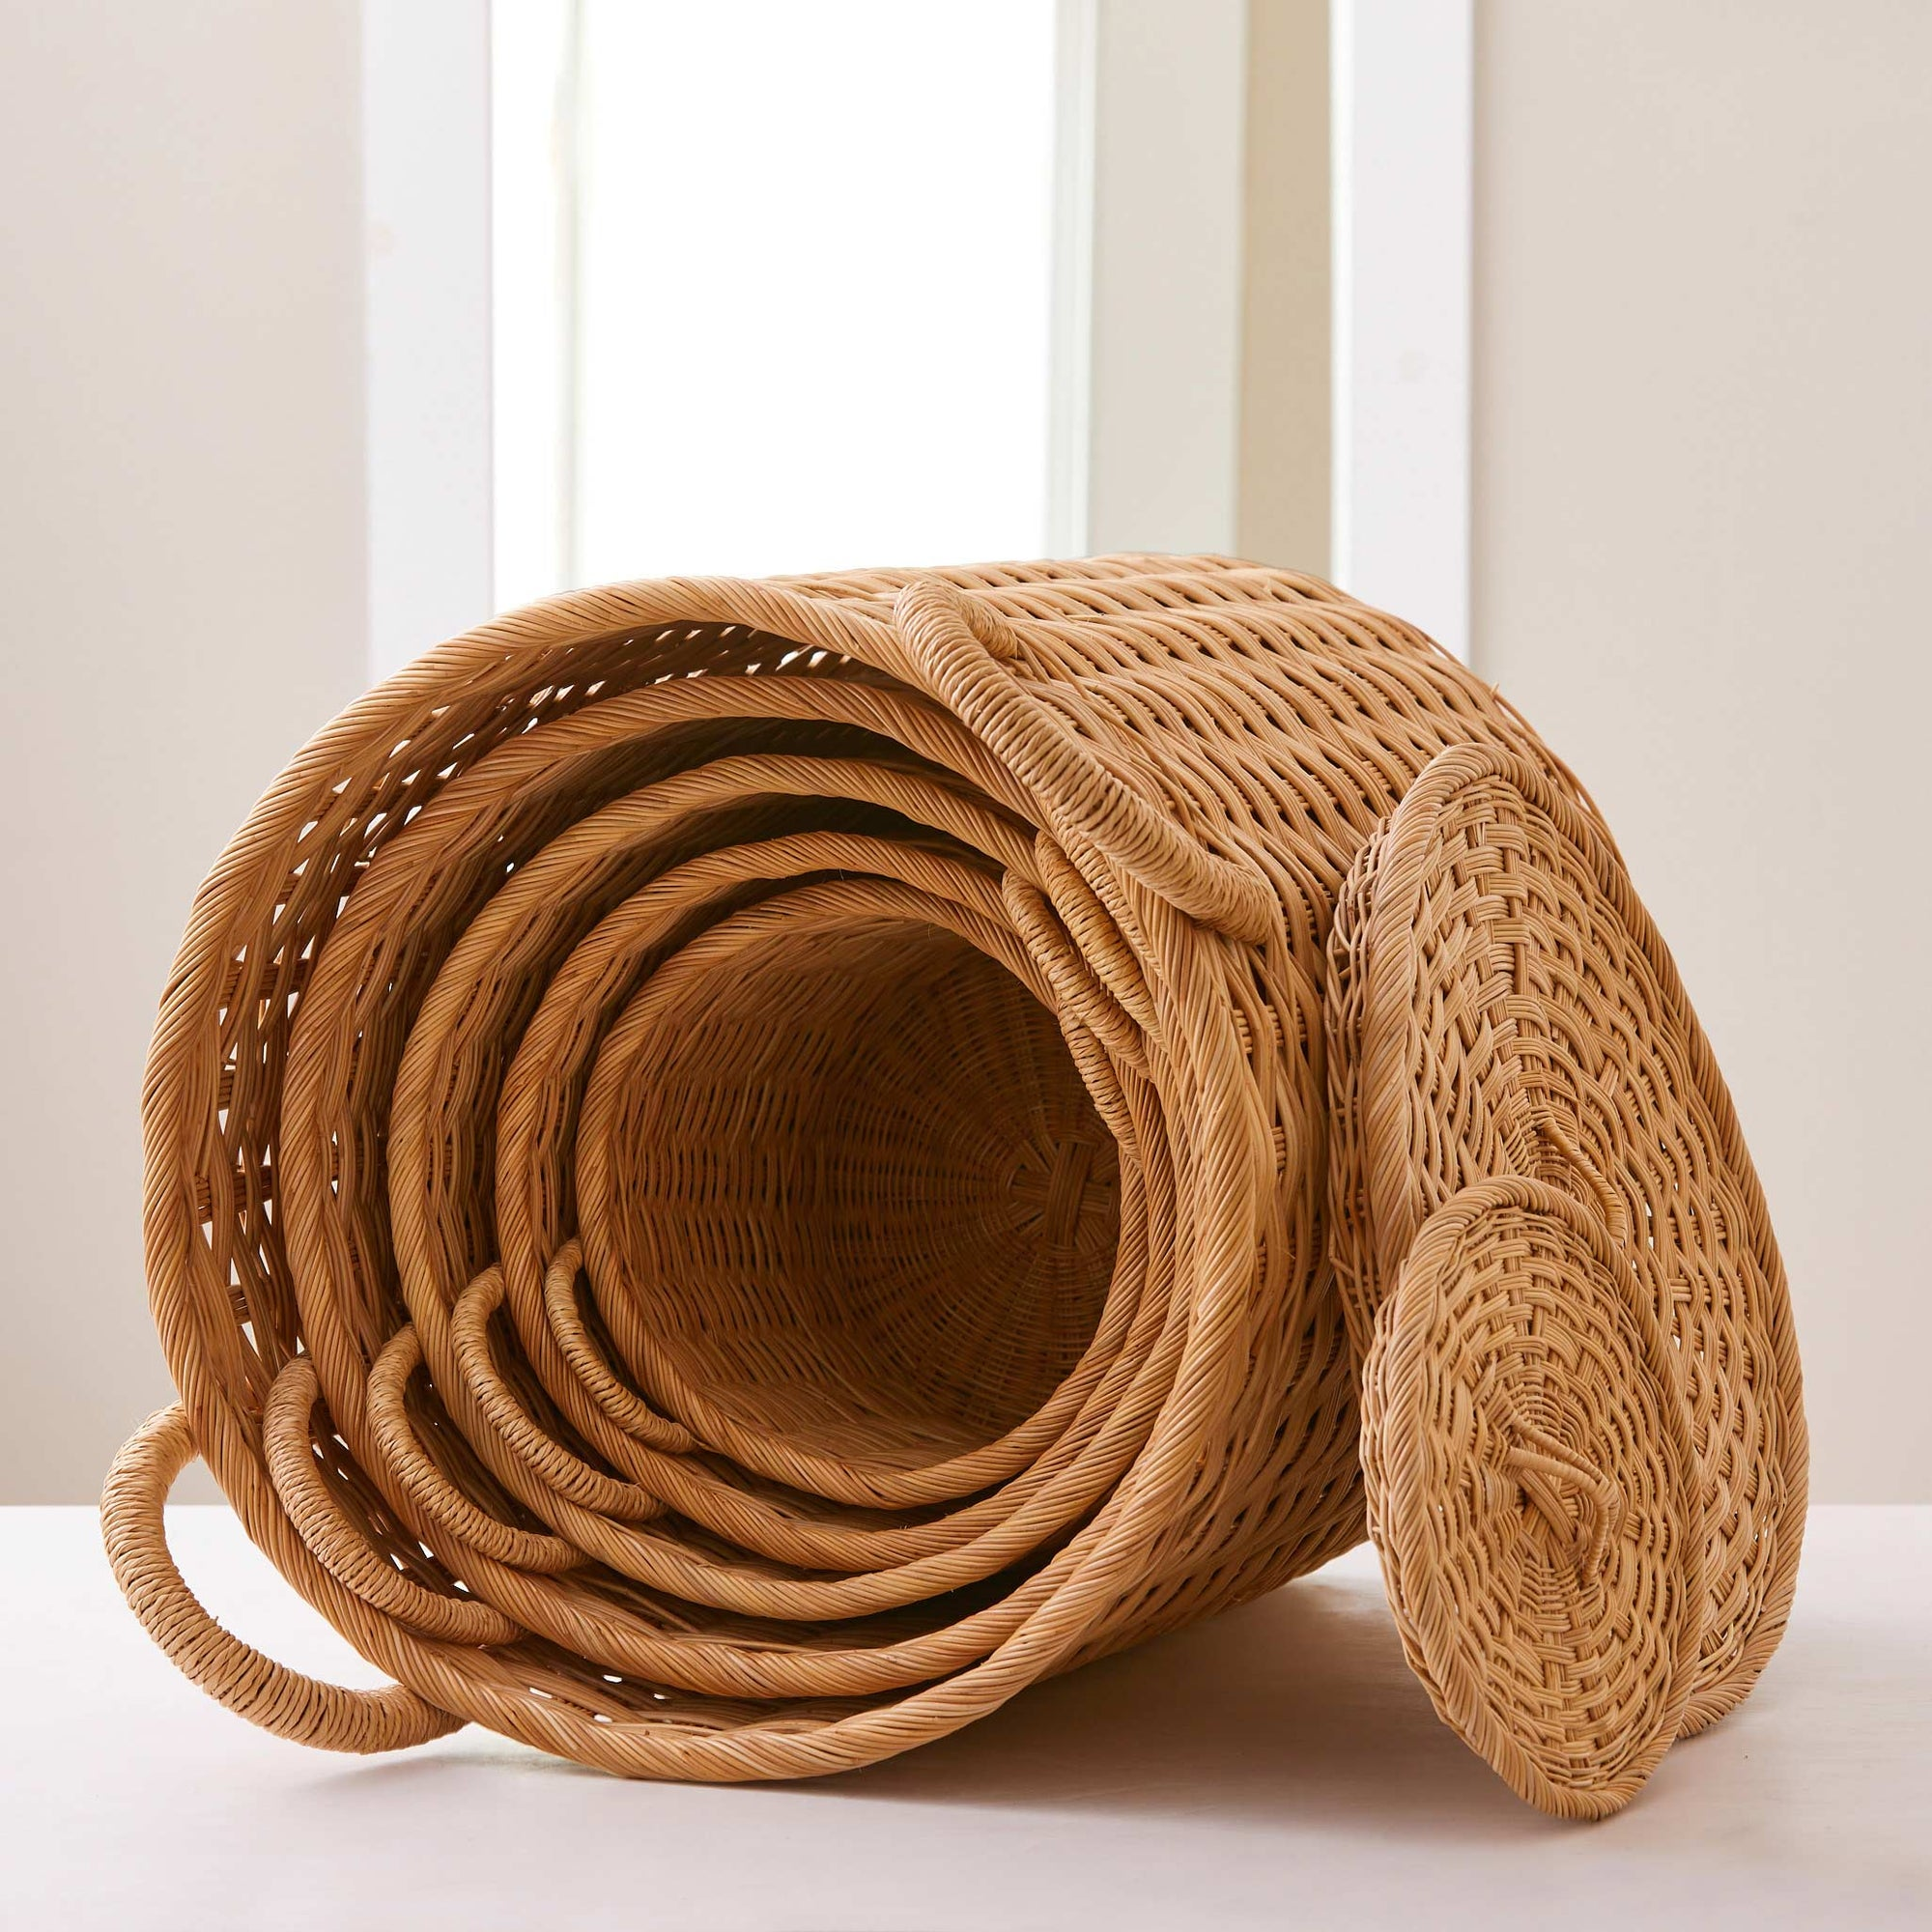 Round rattan storage baskets. Unique storage baskets with lids and handles. 5 sizes from large storage baskets to small. Perfect baskets for shelves.